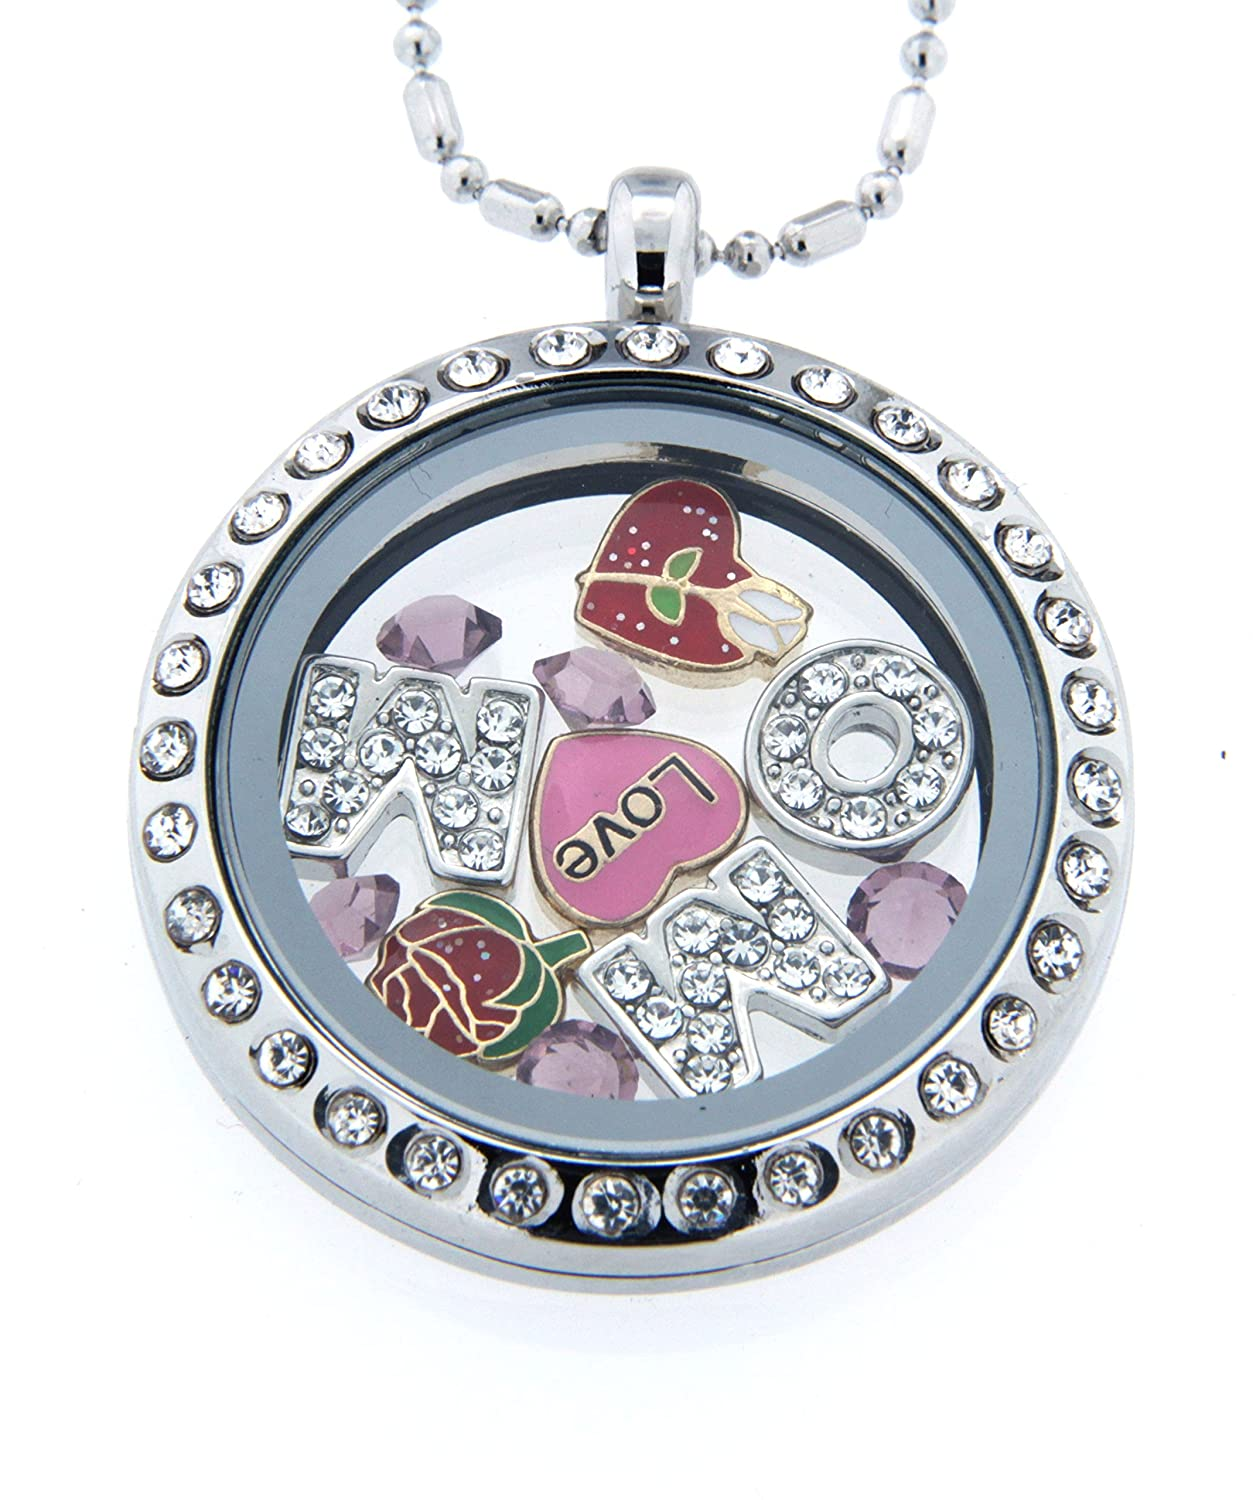 glass lockets with pendantnecklace girlz flower dried chain necklace pin round locket beautiful fashion pendant clear